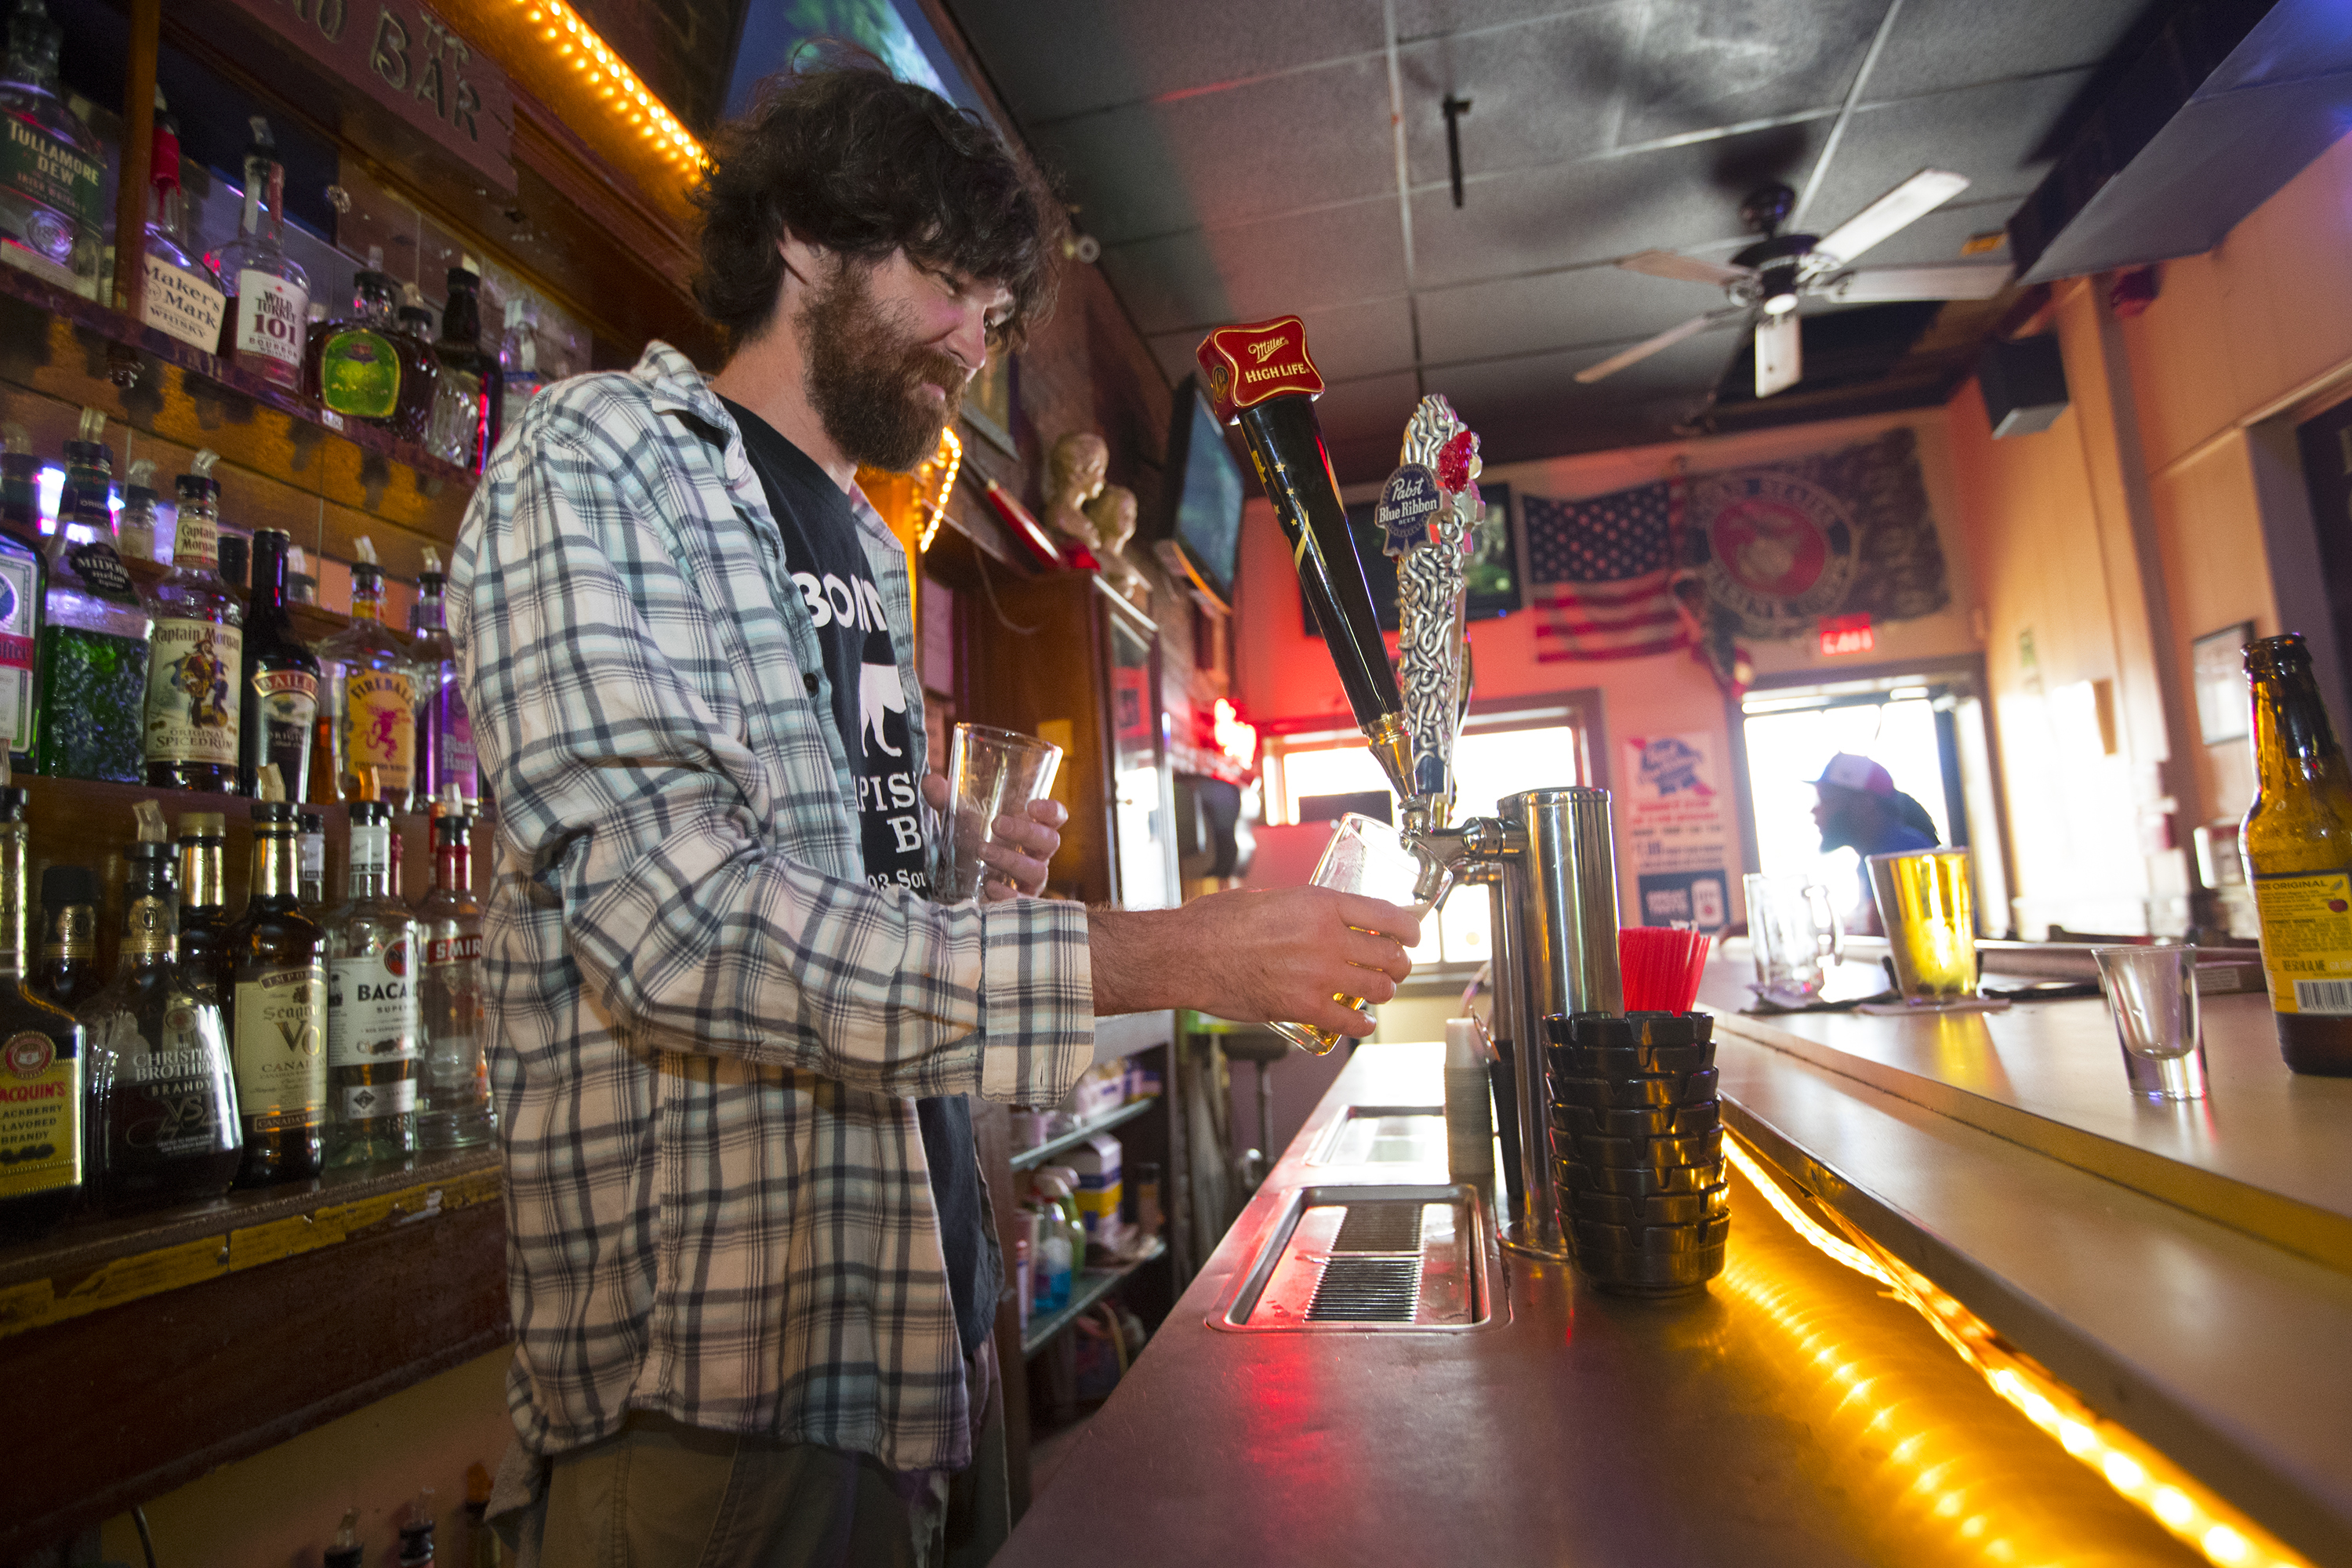 At Bonnie´s Capistrano bar, bartender Eamon Gallagher pour a beer.